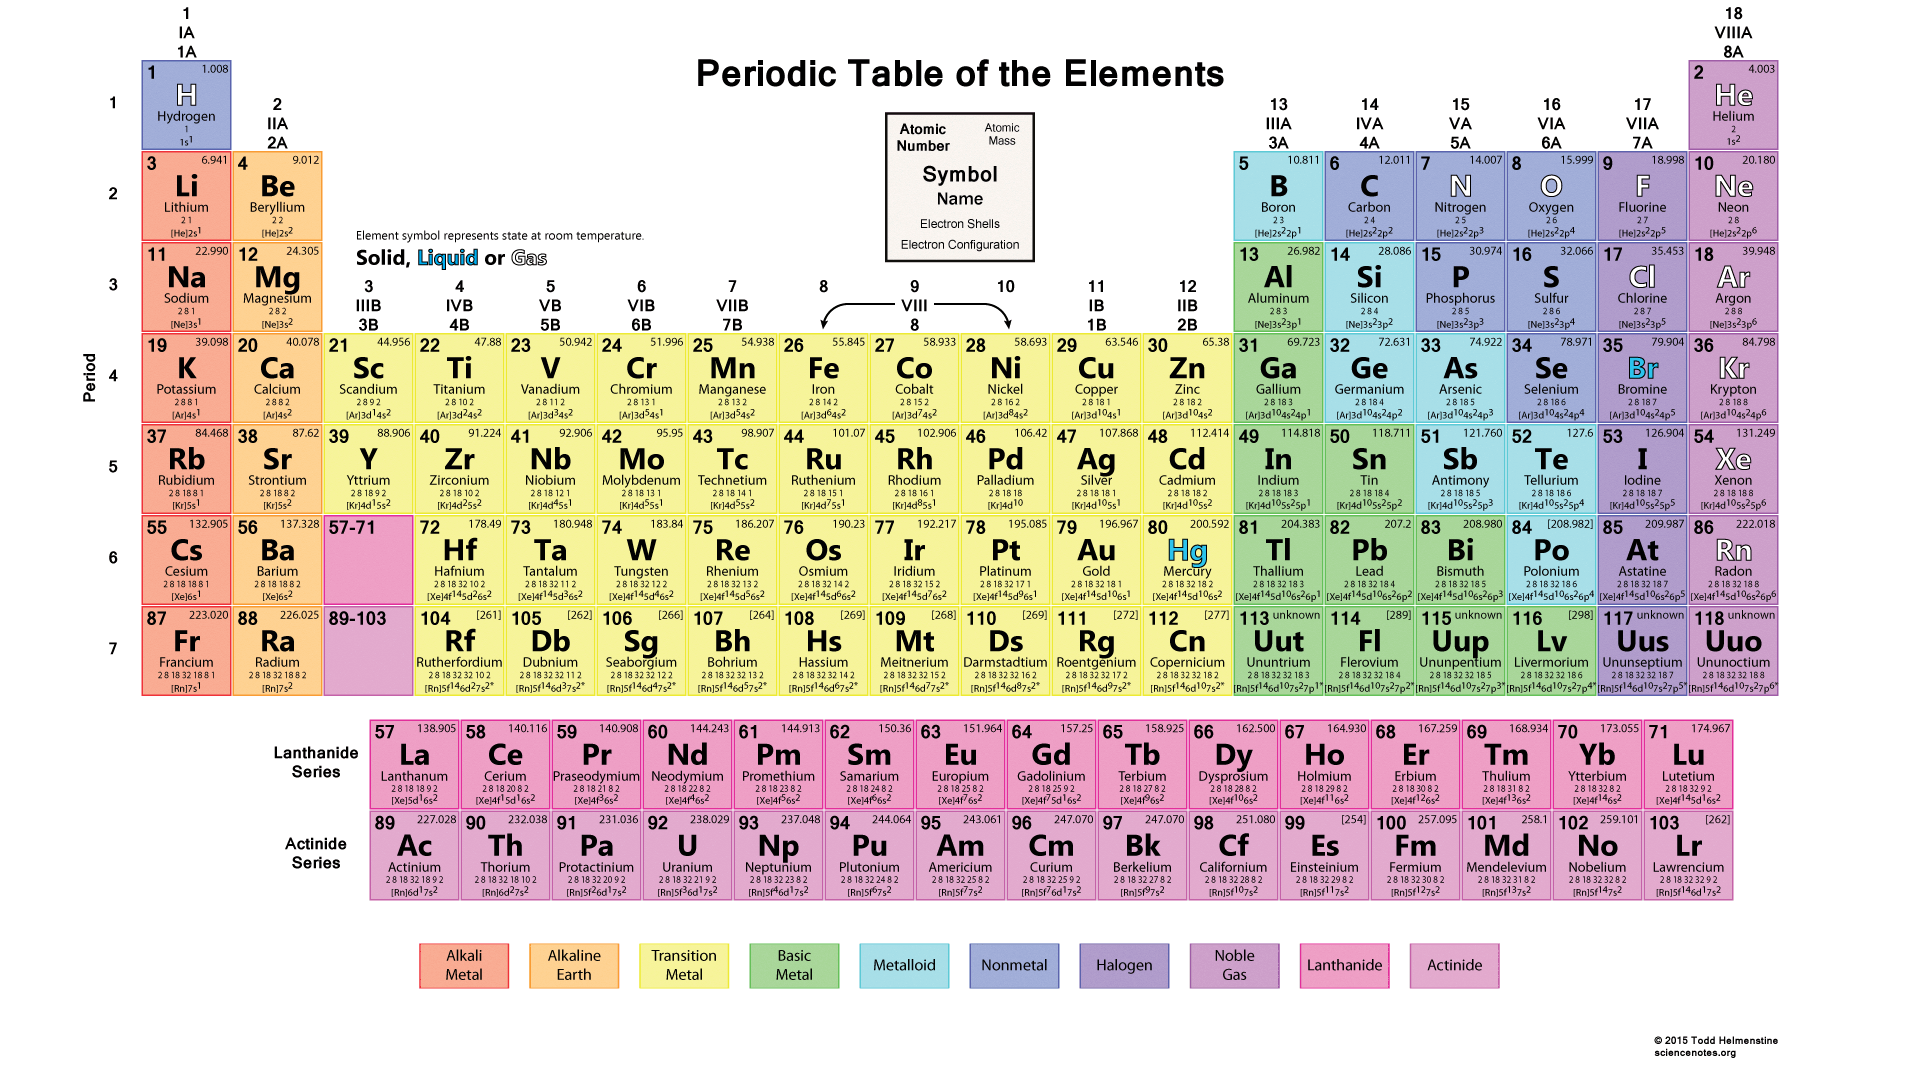 In what order are the elements of the periodic table arranged sciencenotes urtaz Images